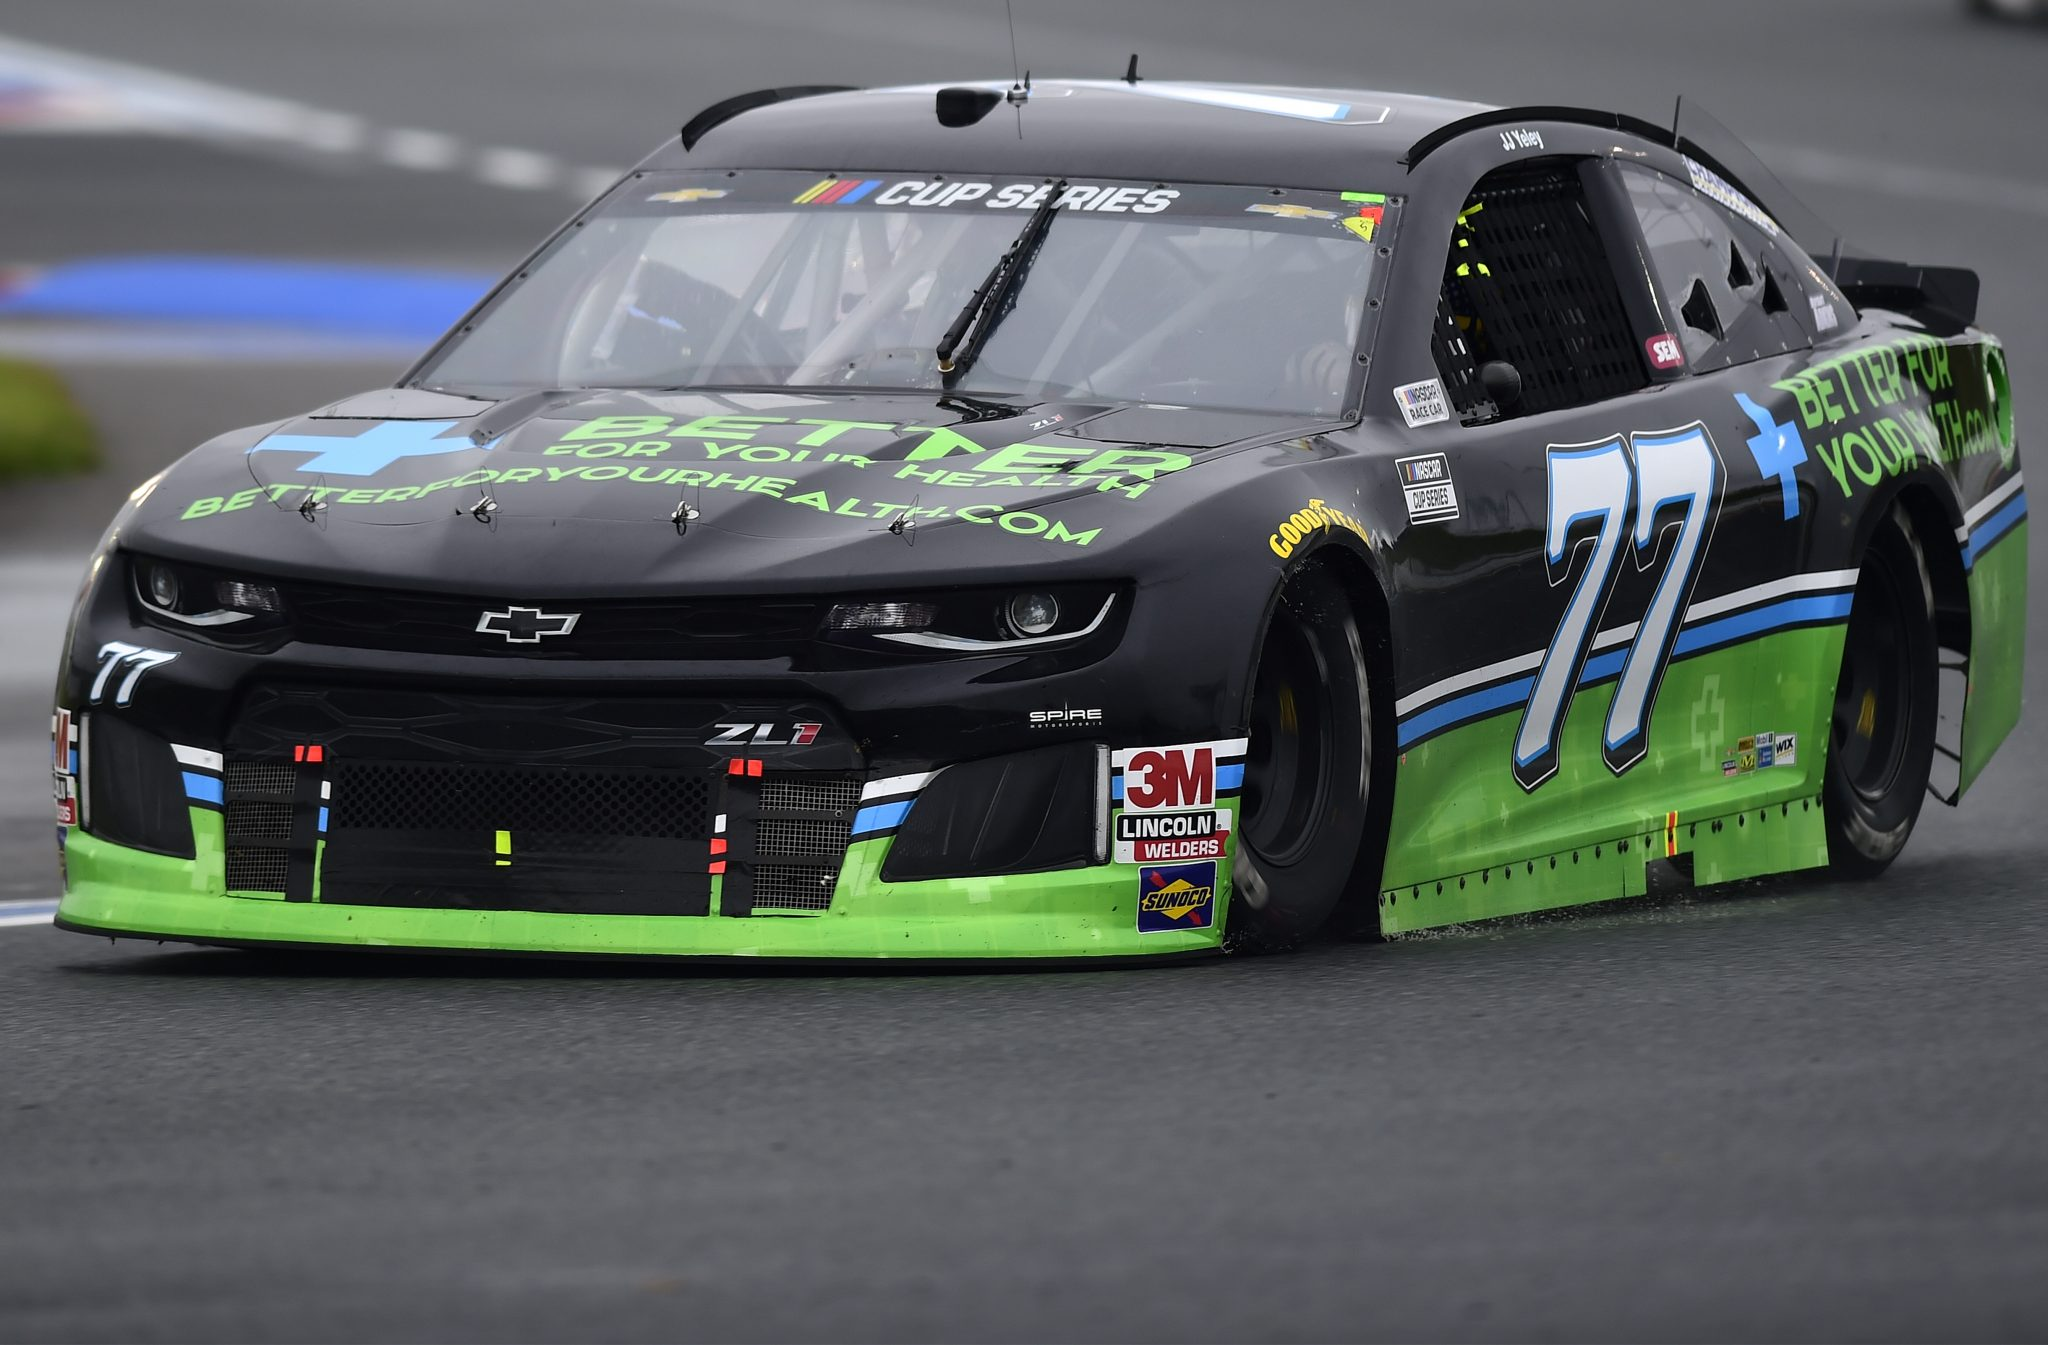 CONCORD, NORTH CAROLINA - OCTOBER 11: JJ Yeley, driver of the #77 BetterForYourHealth.com Chevrolet, drives during the NASCAR Cup Series Bank of America ROVAL 400 at Charlotte Motor Speedway on October 11, 2020 in Concord, North Carolina. (Photo by Jared C. Tilton/Getty Images) | Getty Images